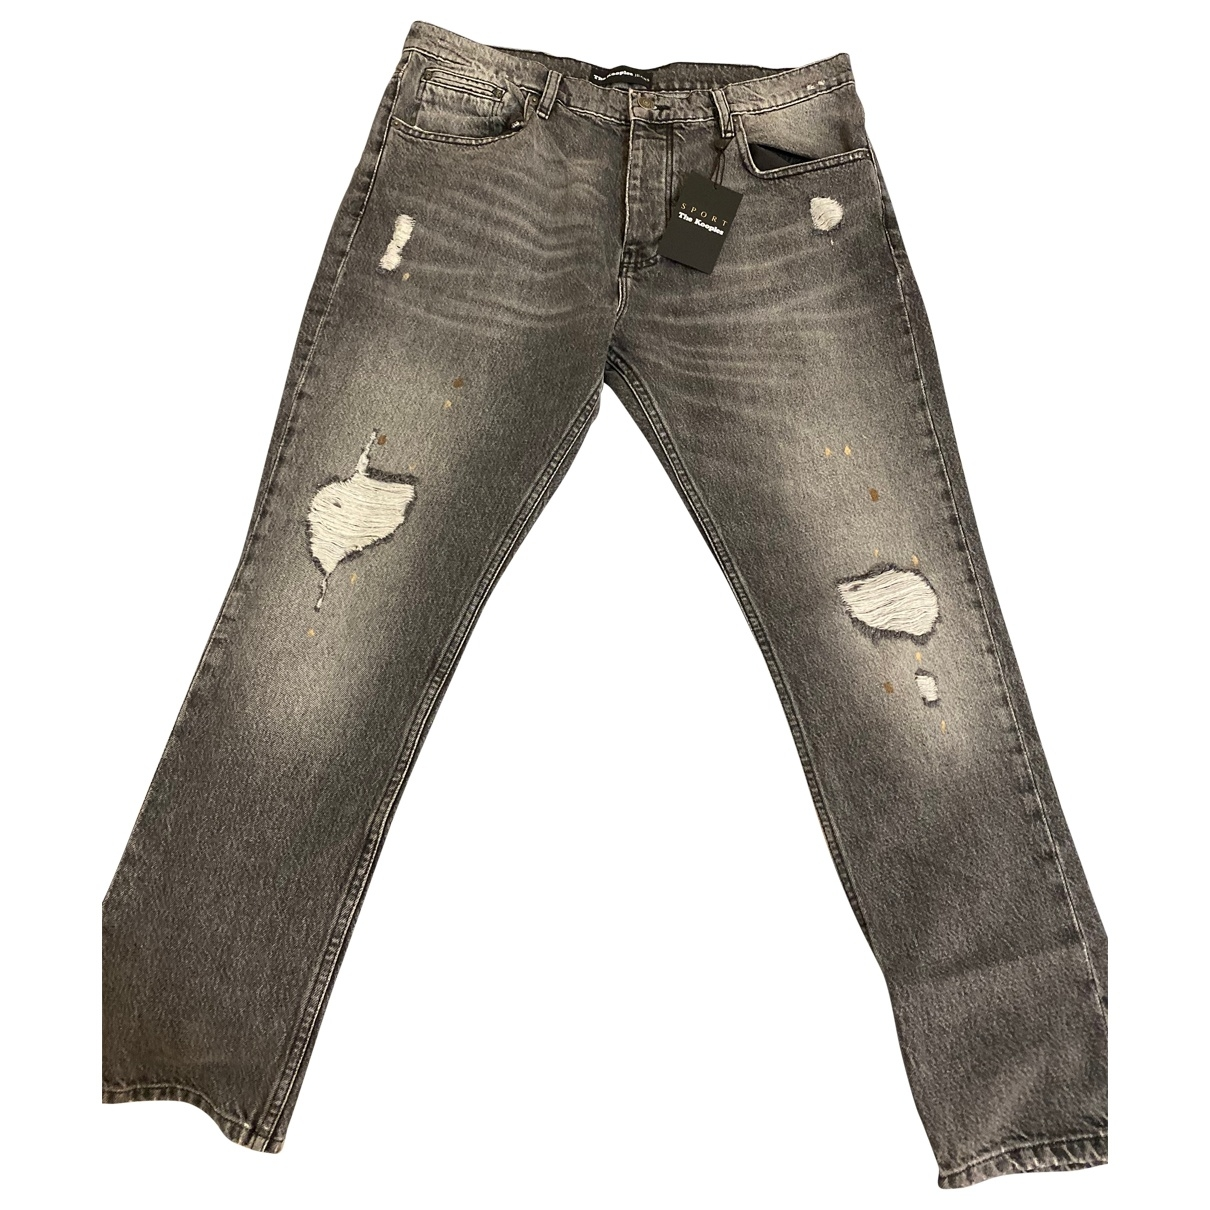 The Kooples Fall Winter 2019 Grey Cotton Jeans for Men 34 US